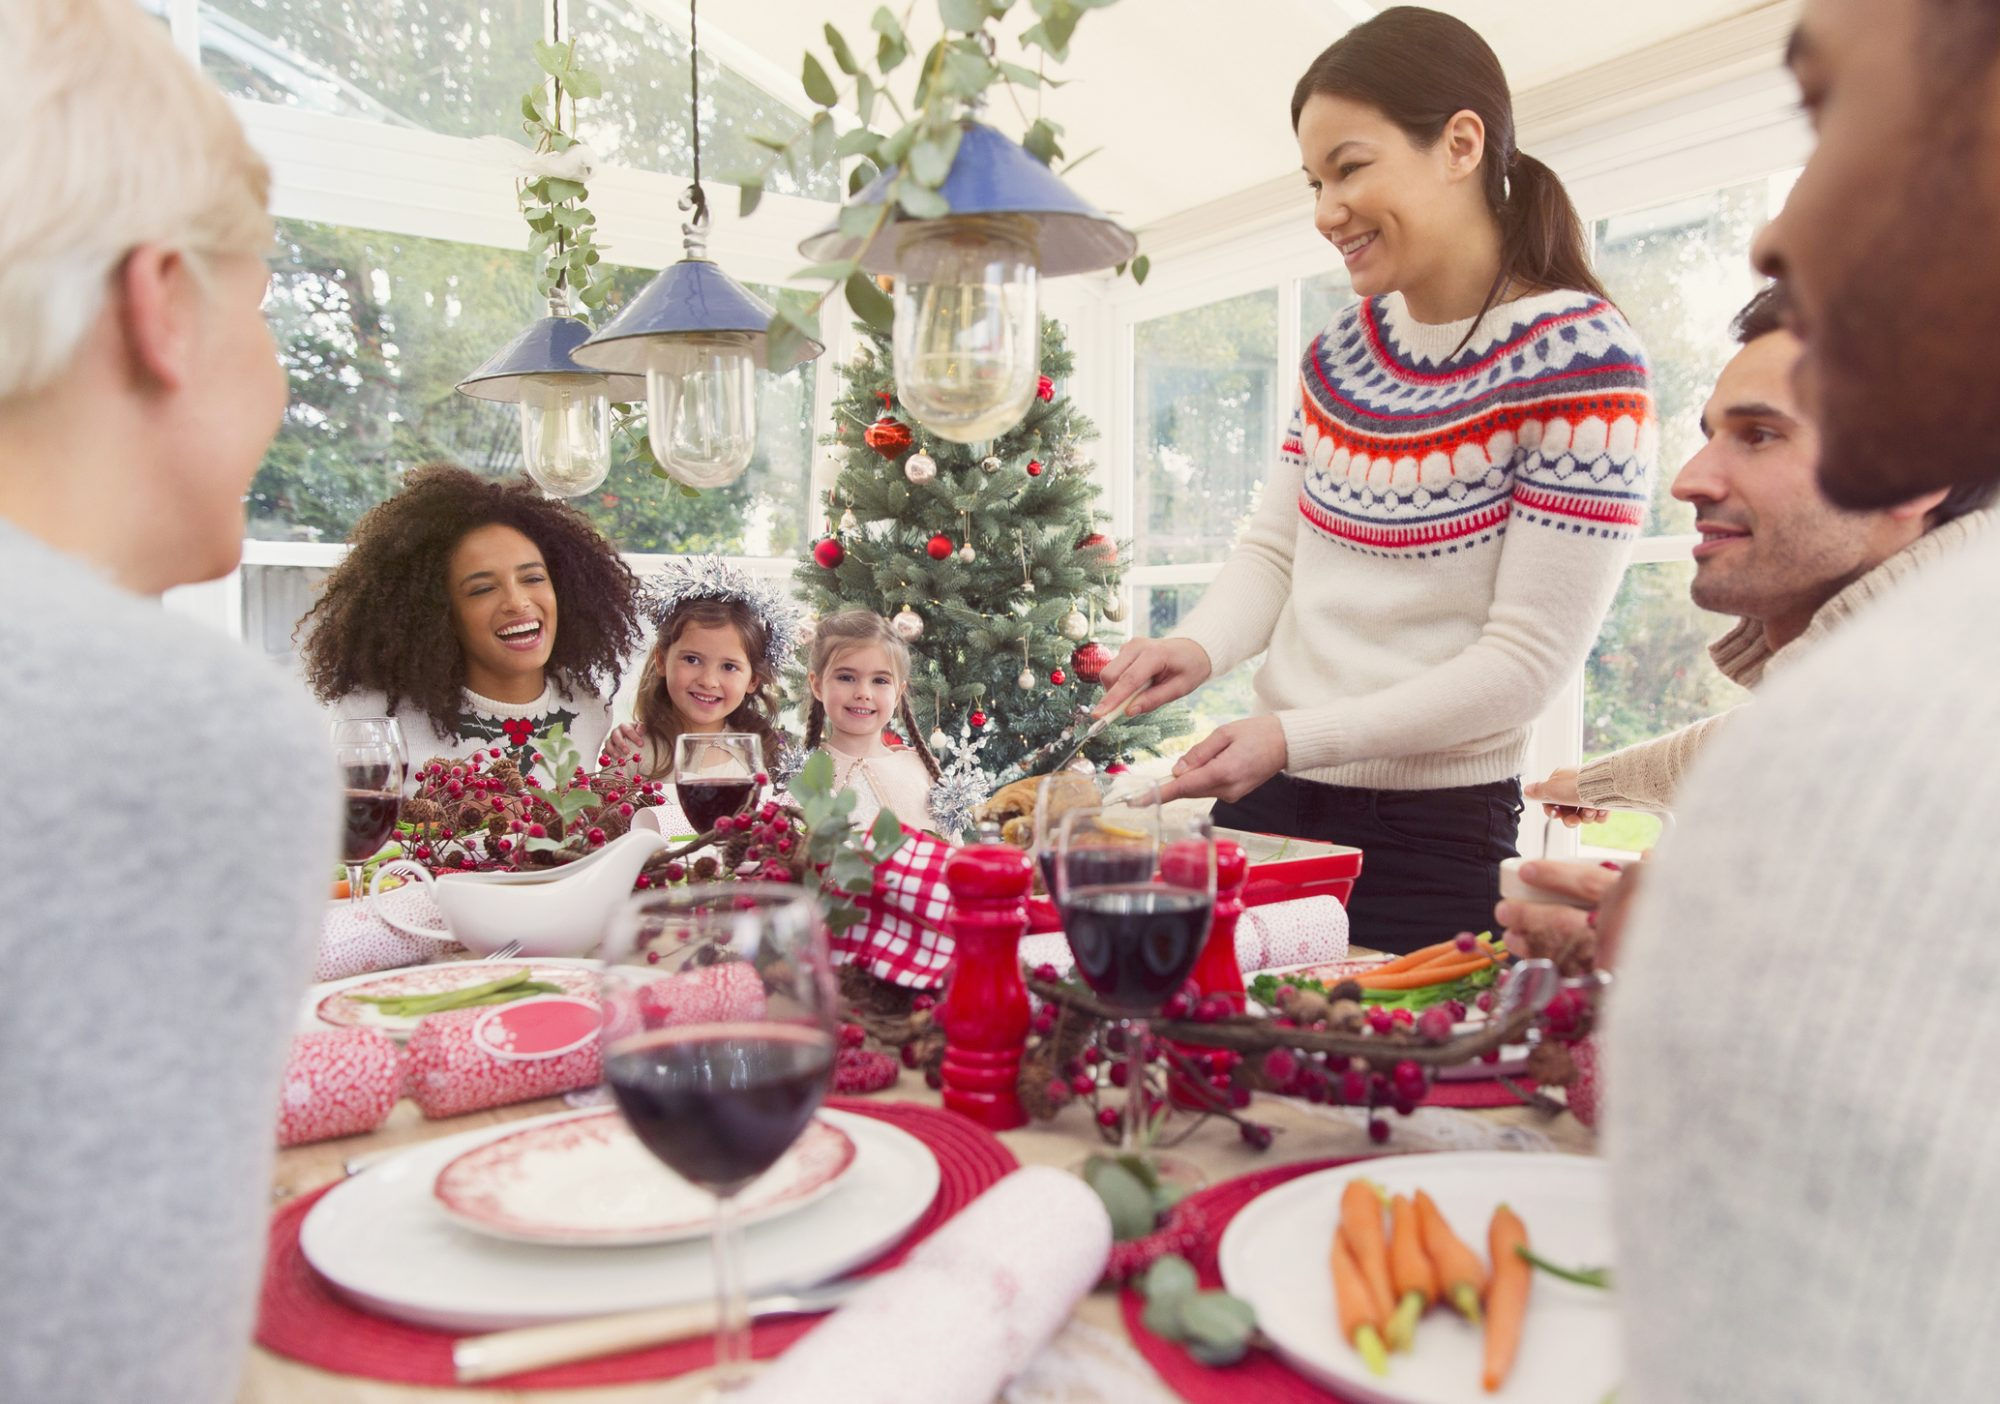 12 Tips for Hosting Holiday GuestsLike a Pro